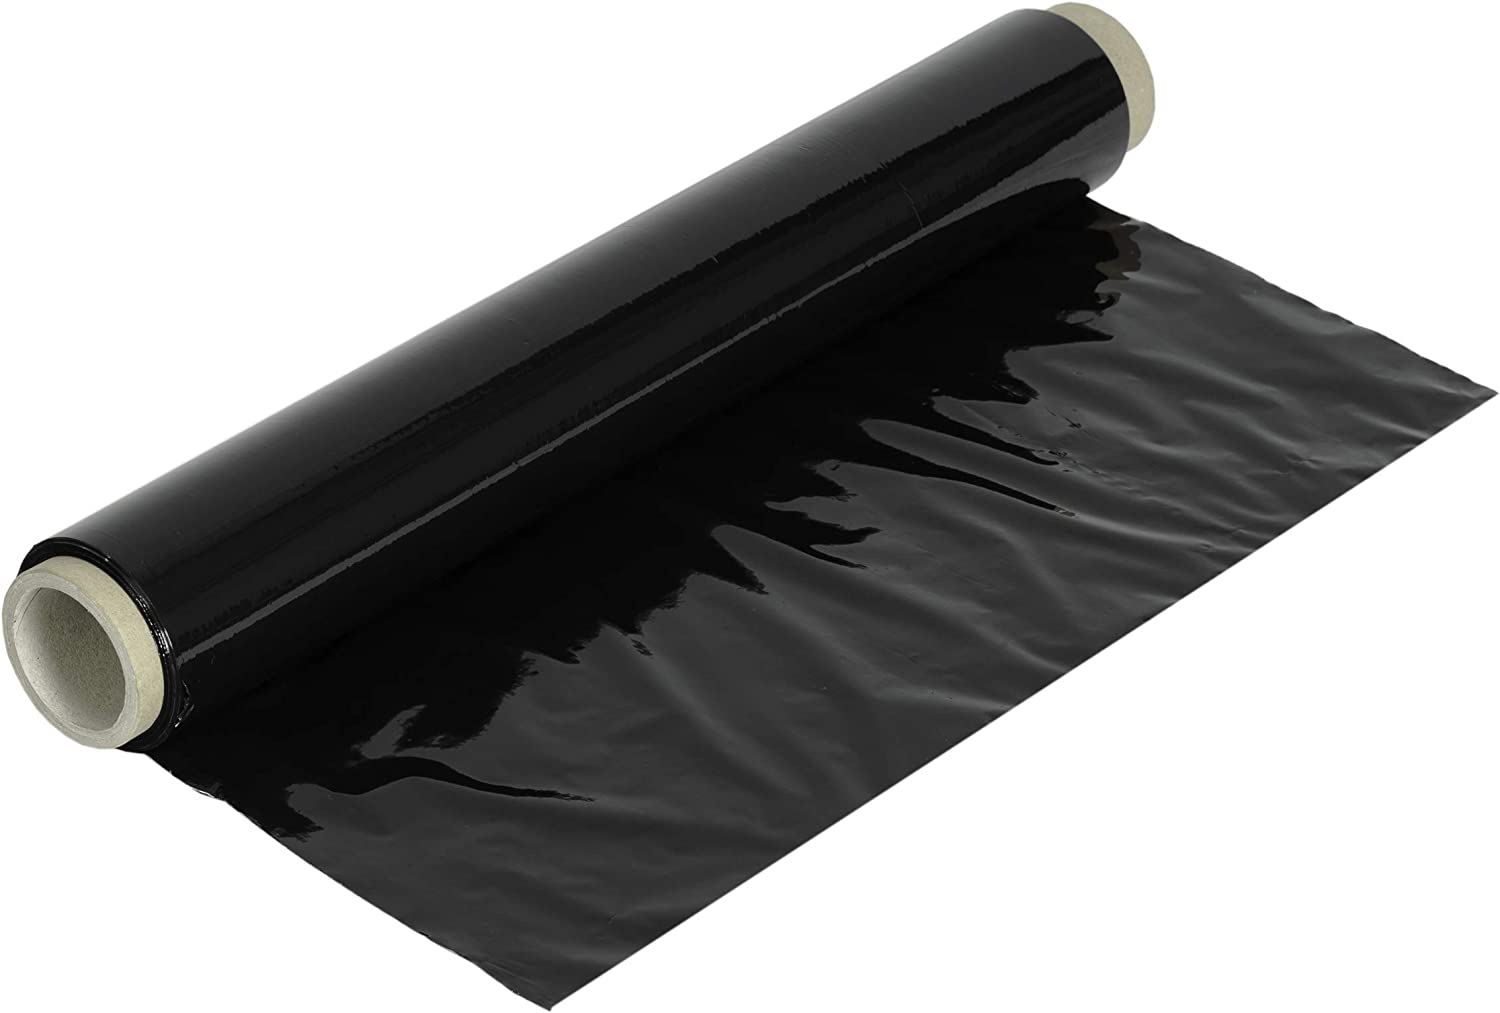 Rollo film estirable manual 23my, 2 kg (Negro)